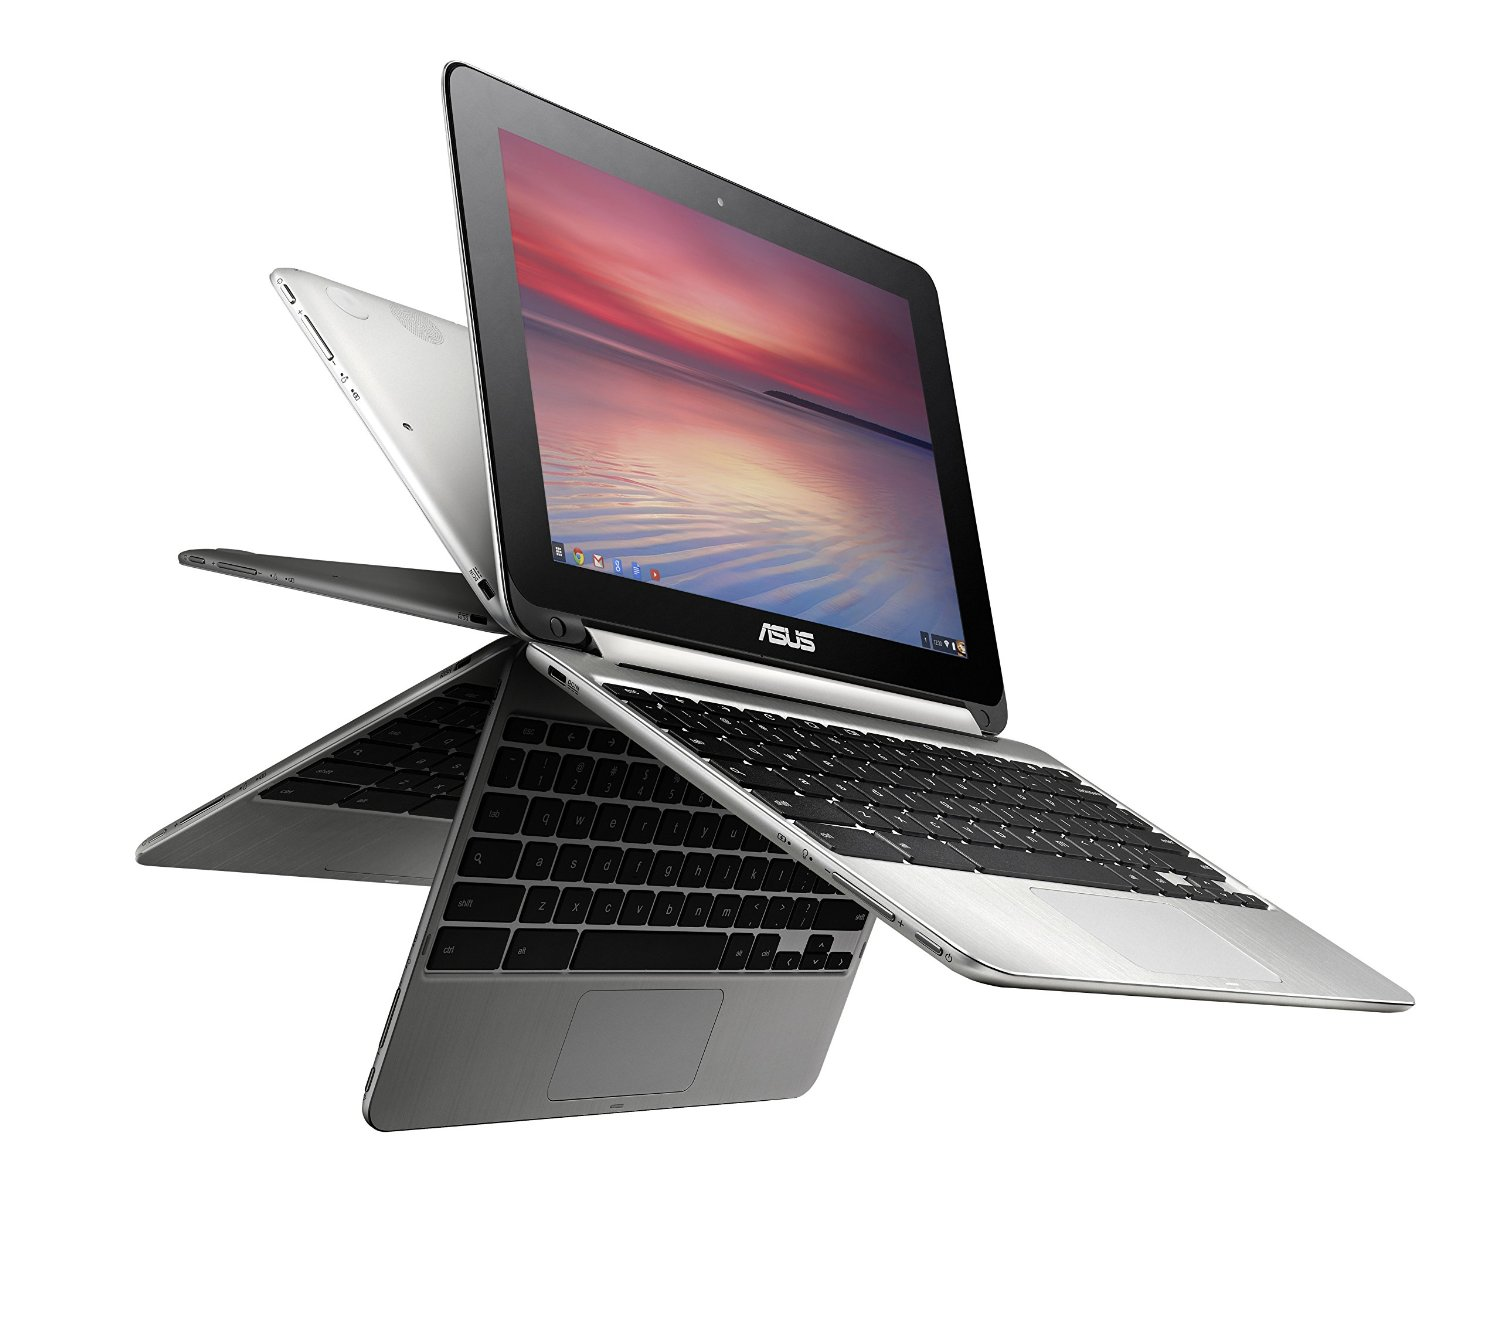 ASUS Chromebook Flip C100 10.1 inch touchscreen